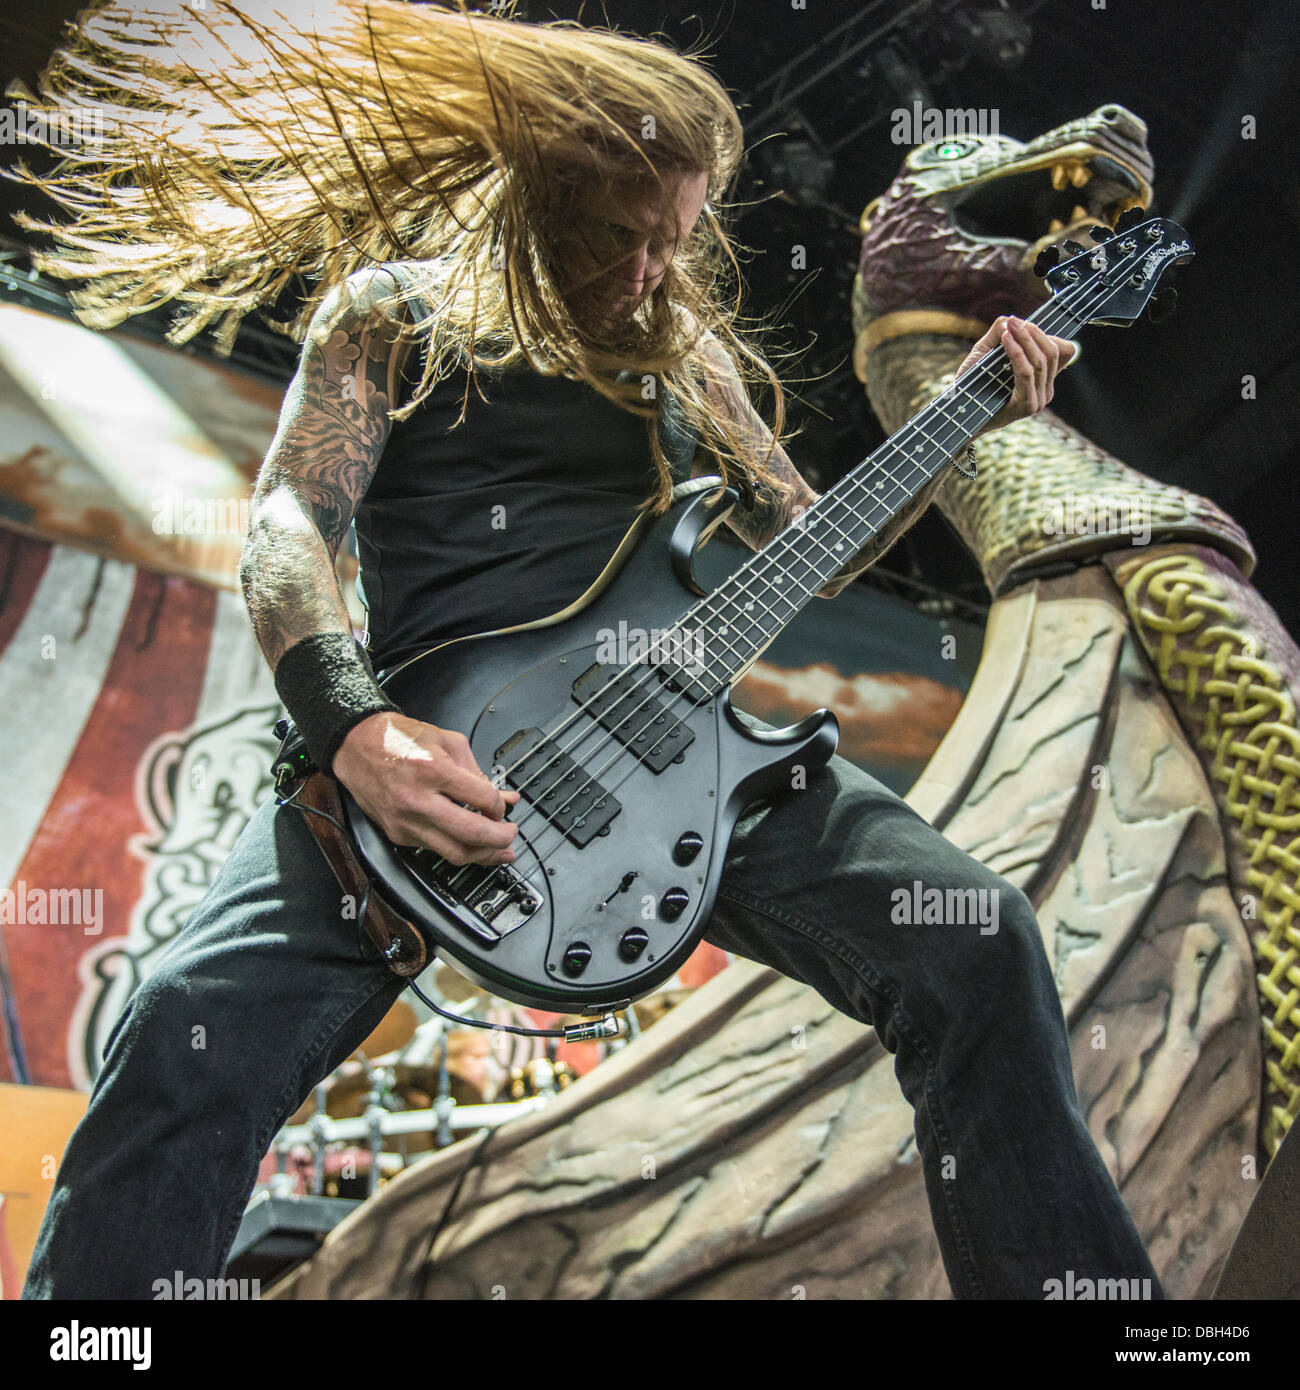 swedish heavy metal band amon amarth performing live at